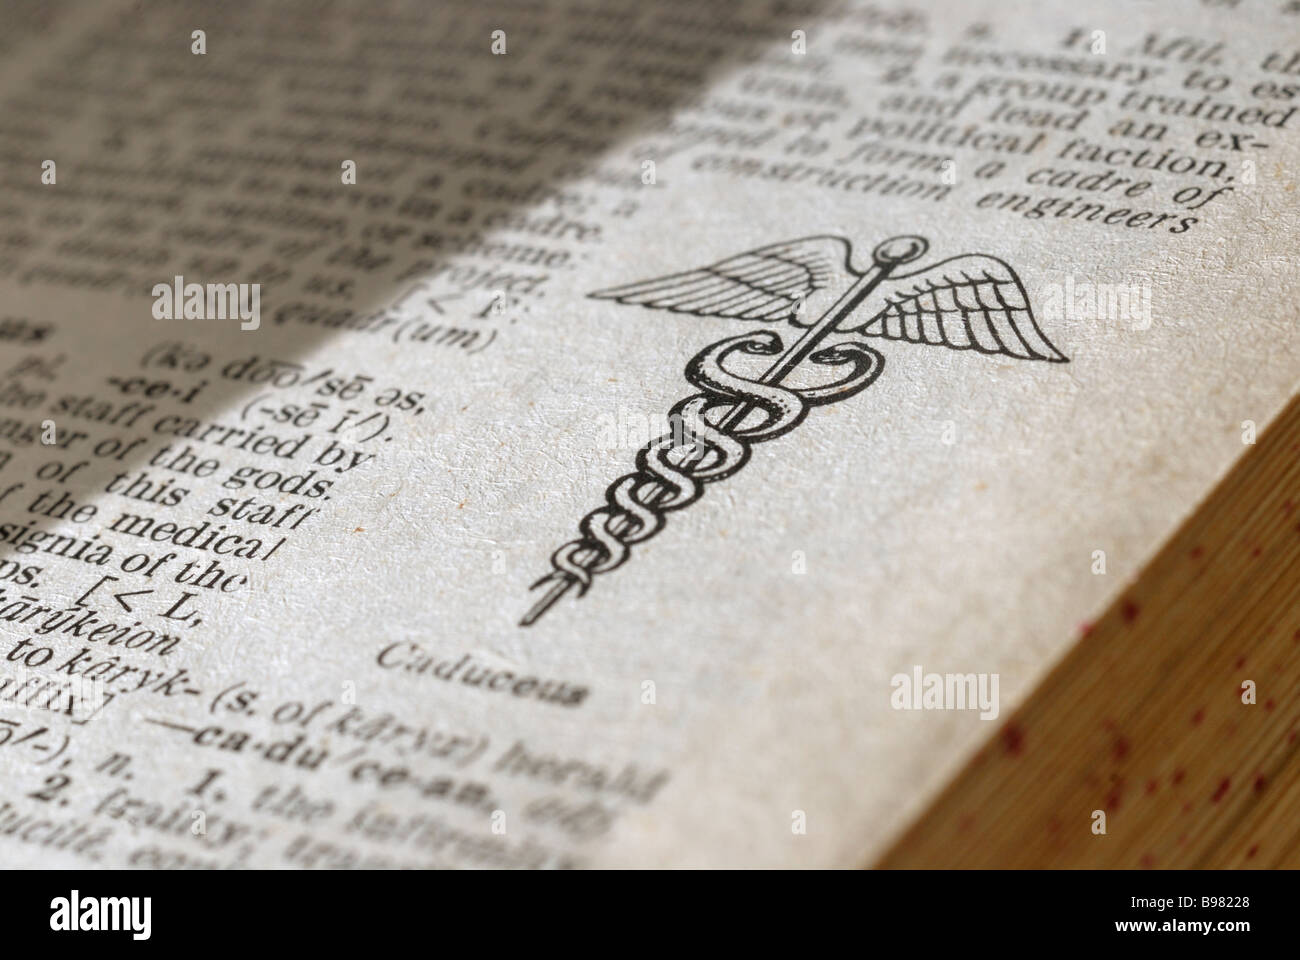 Caduceus symbol on a dictionary page - Stock Image